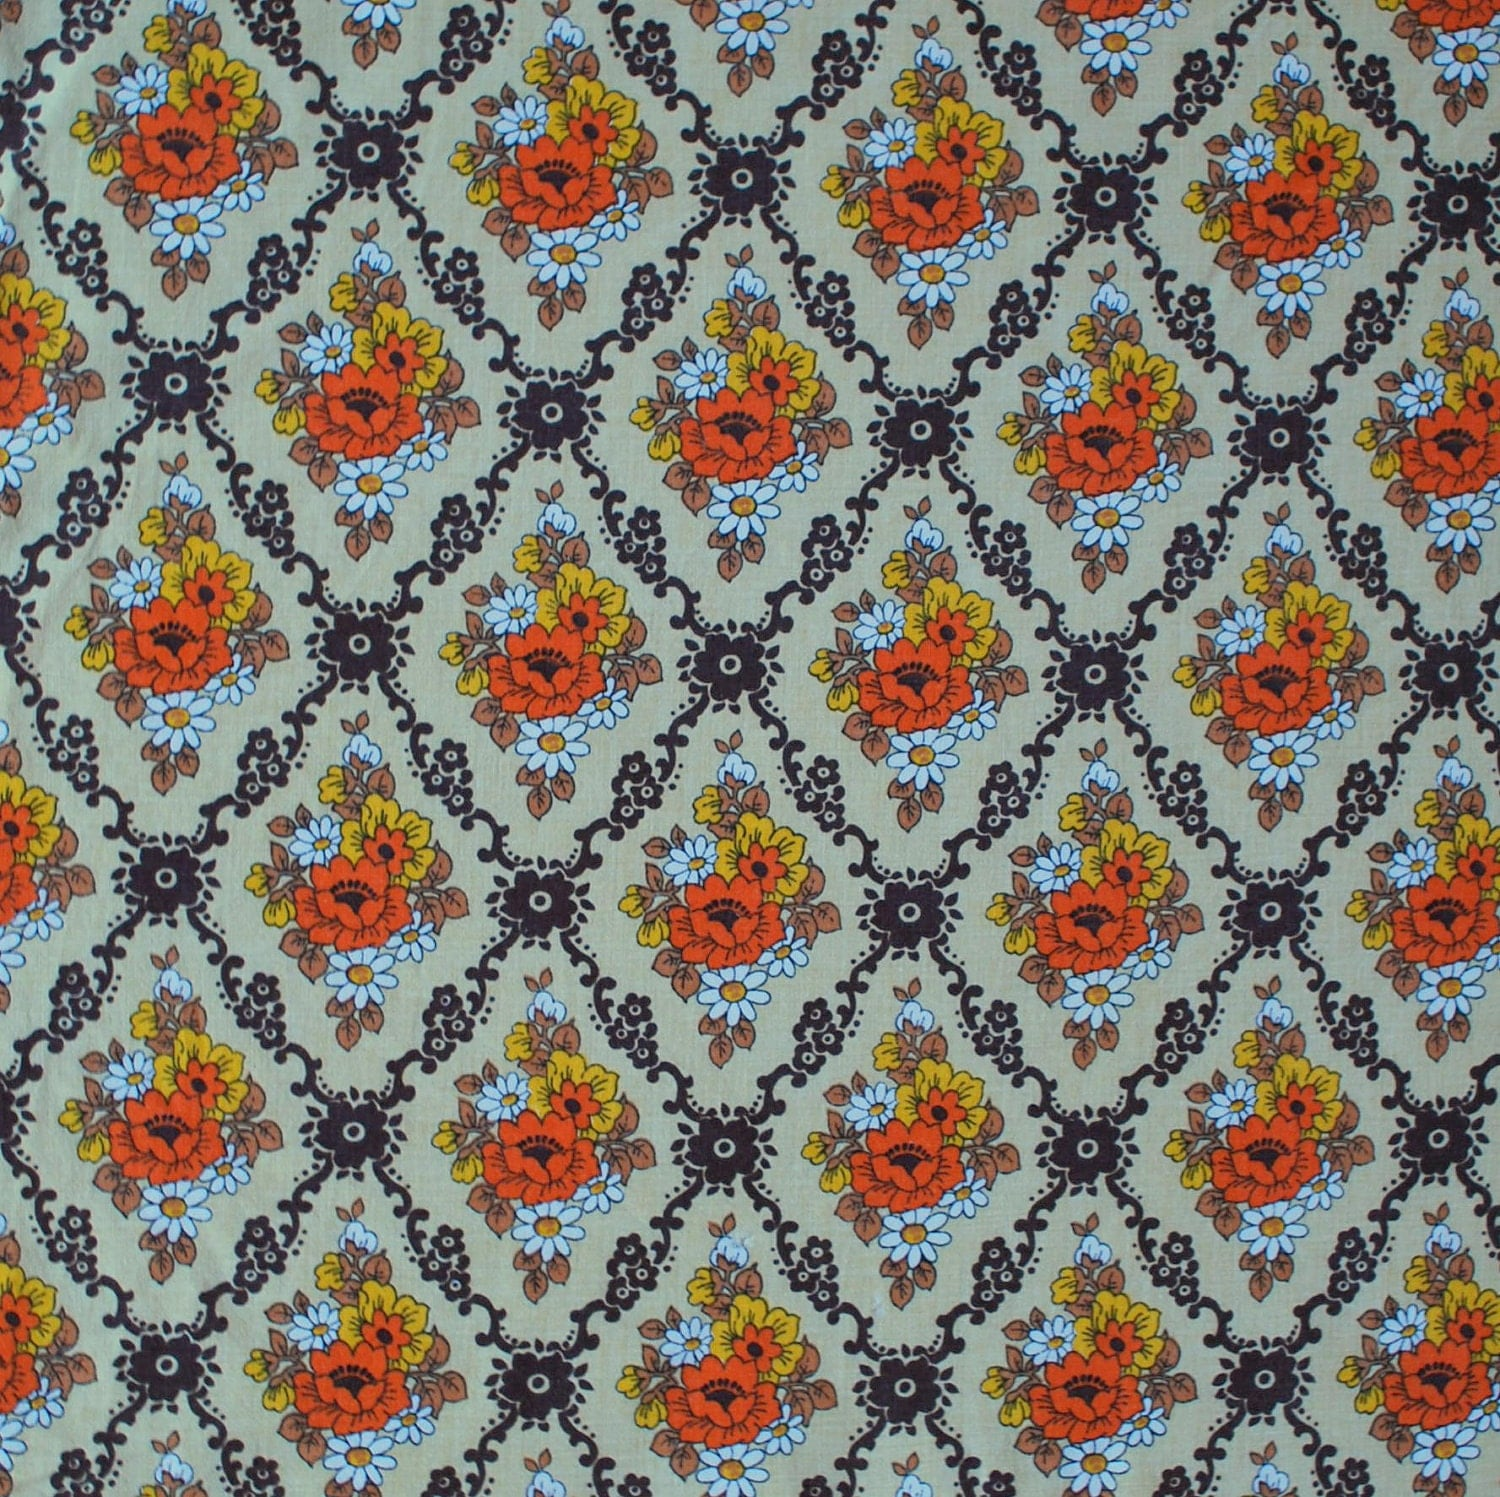 Antique Floral: Vintage Floral Fabric FQ